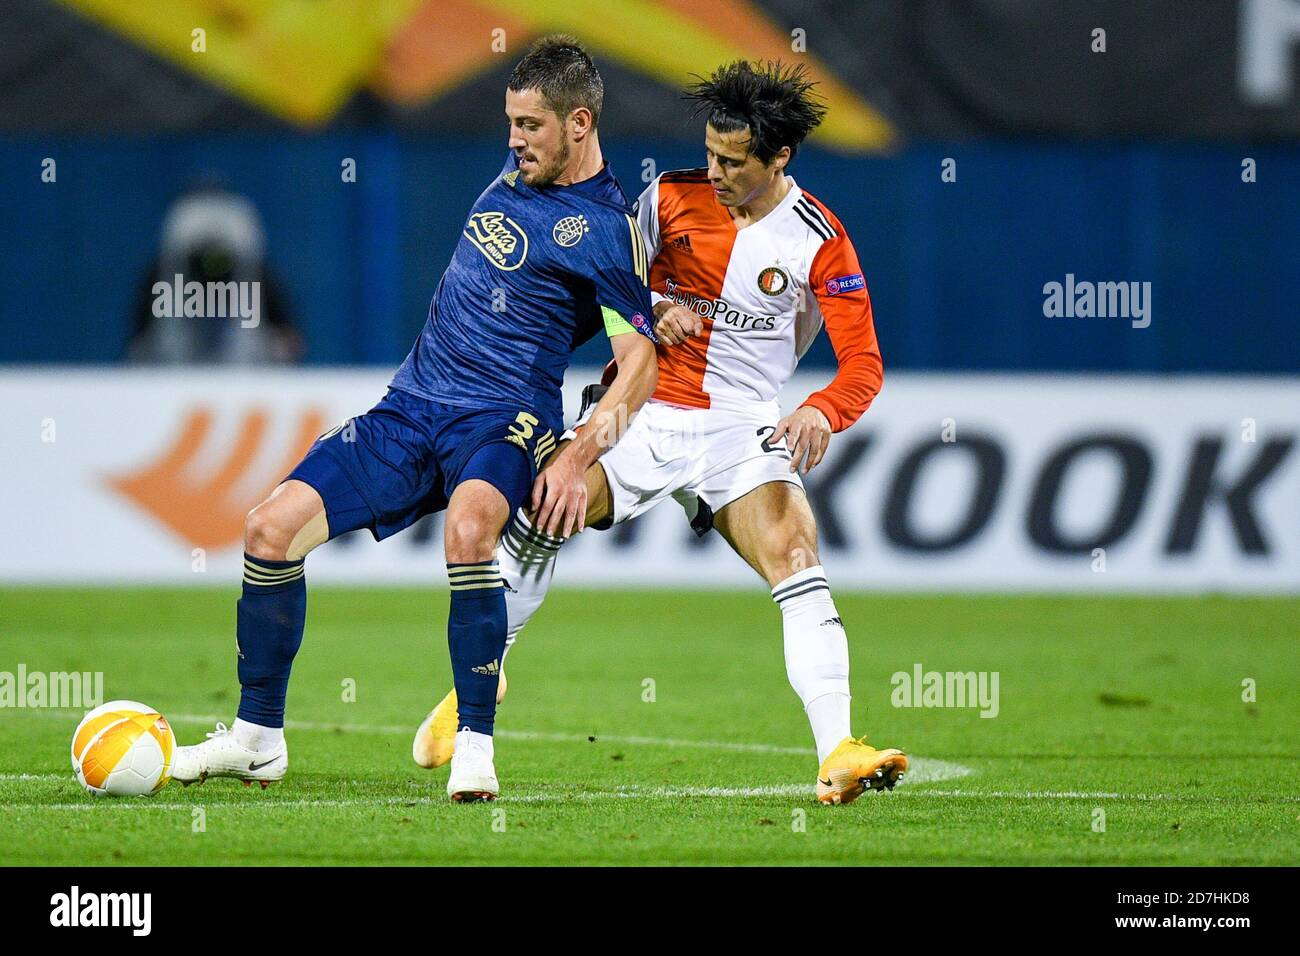 Zagreb Croatia October 22 Arijan Ademi Of Dinamo Zagreb Joao Teixeira Of Feyenoord During The Uefa Europa League Match Between Dinamo Zagrab And Stock Photo Alamy